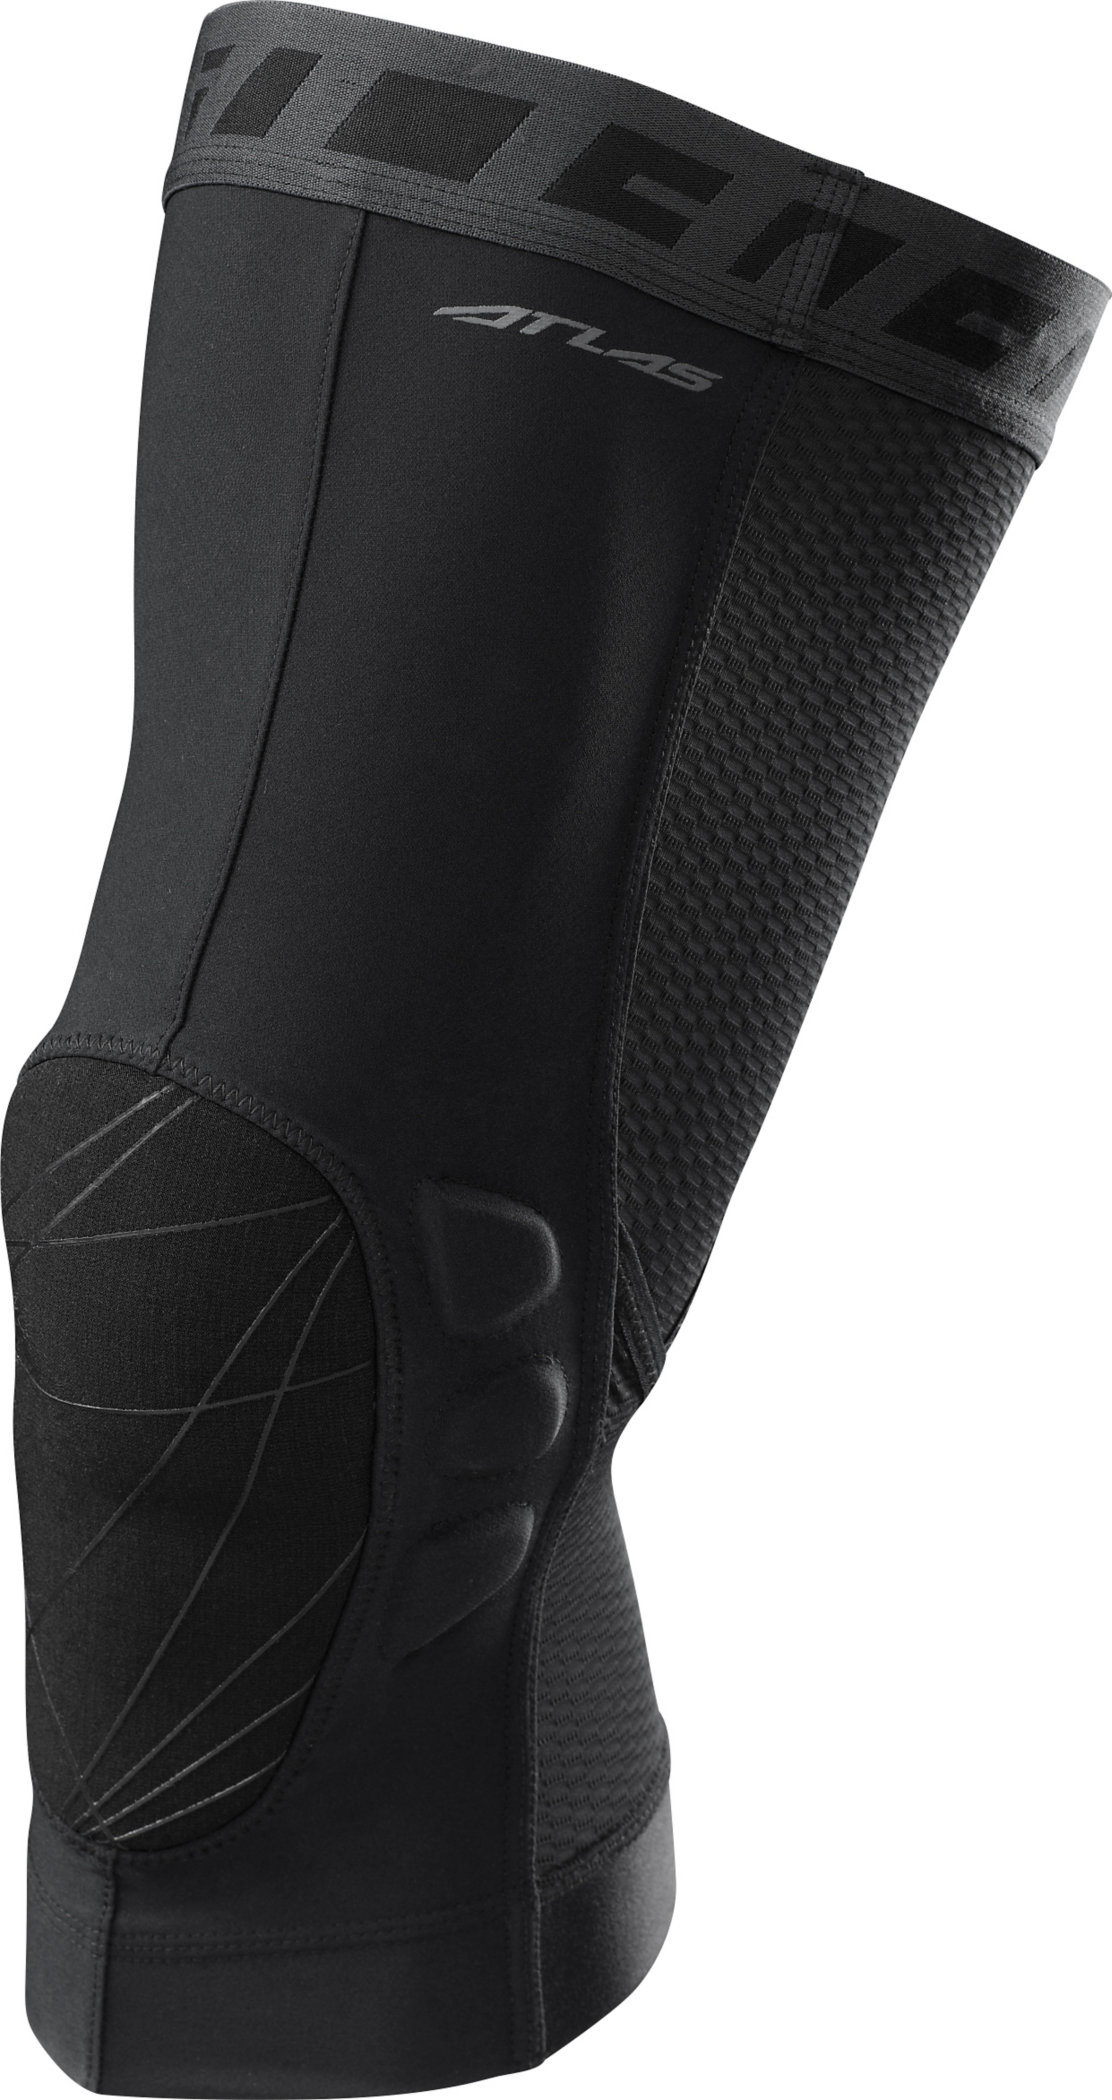 SPECIALIZED ATLAS KNEE PAD BLK L - Alpha Bikes